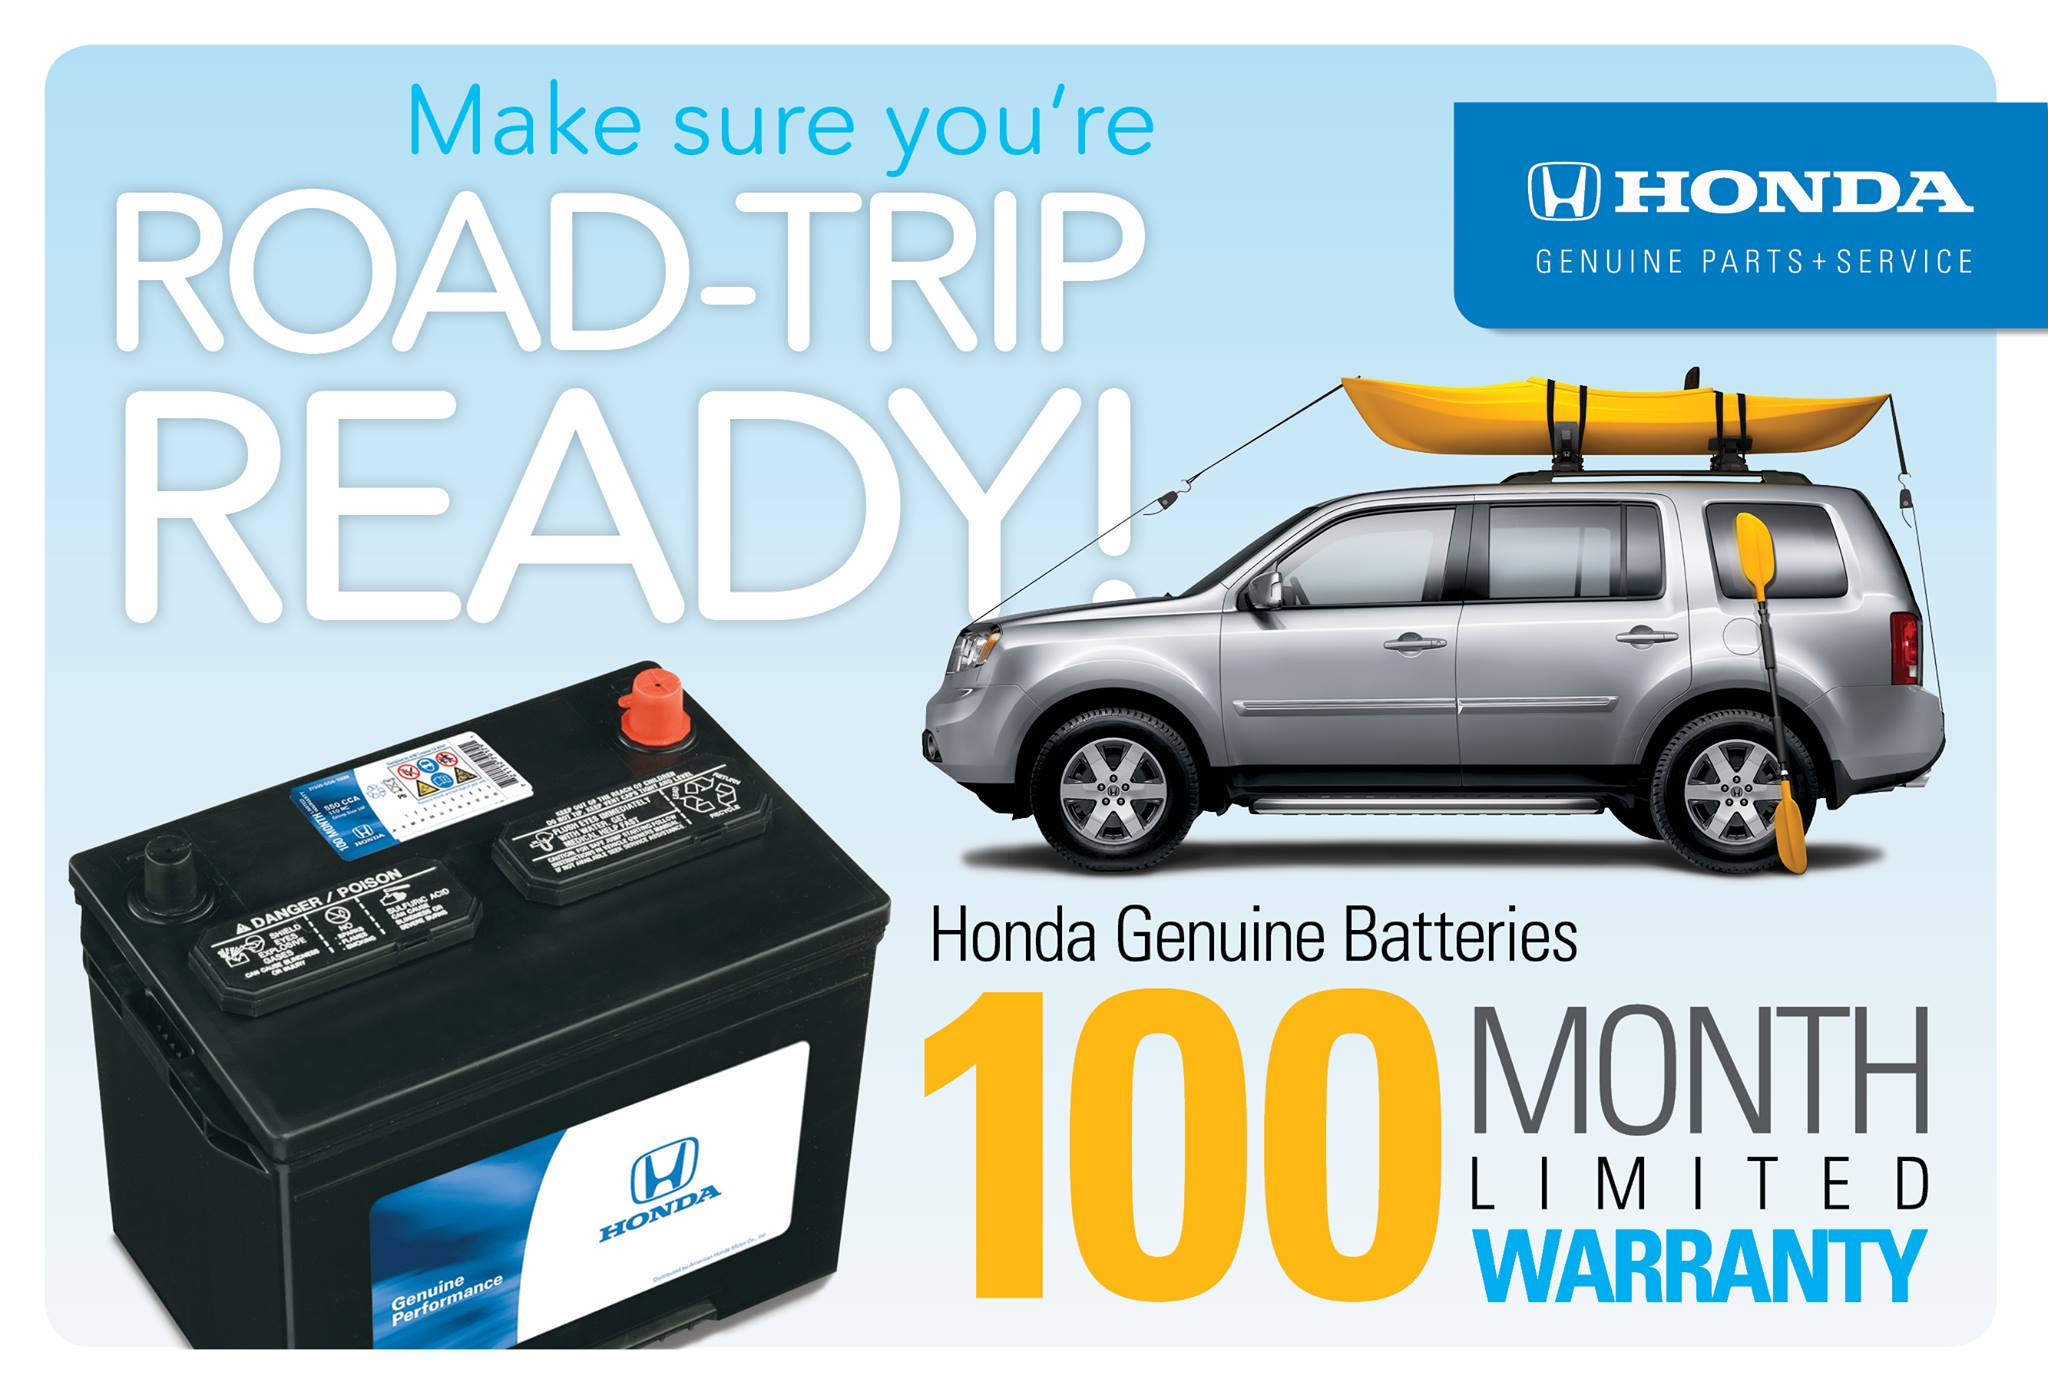 Is Still In Full Swing And Honda Wants To Make Sure That You Are Road Trip Ready By Telling All About Their Incredible Genuine Batteries